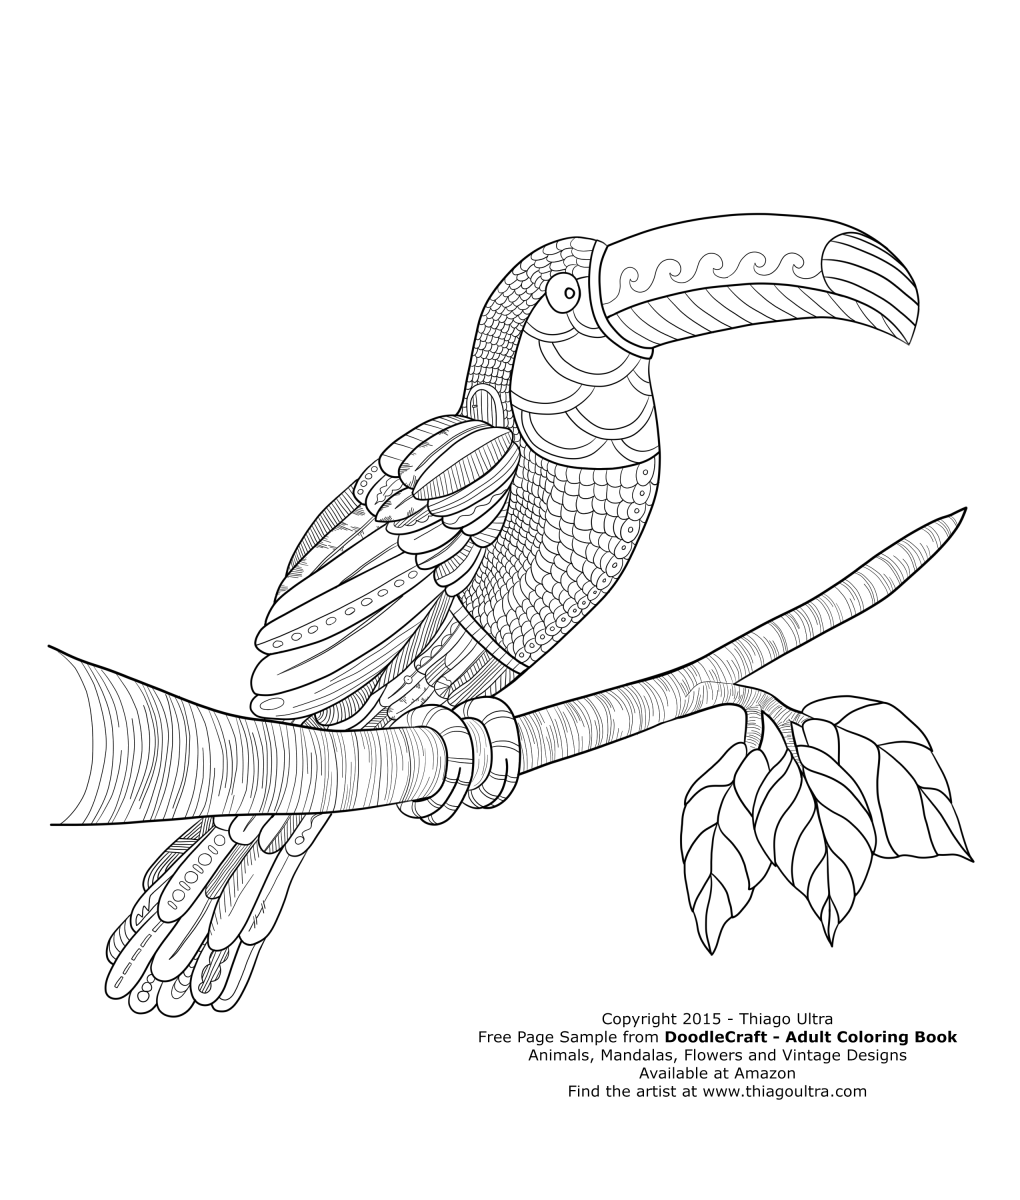 toucan coloring pages to print | Toucan - Free Page Sample - DoodleCraft Adult Coloring ...